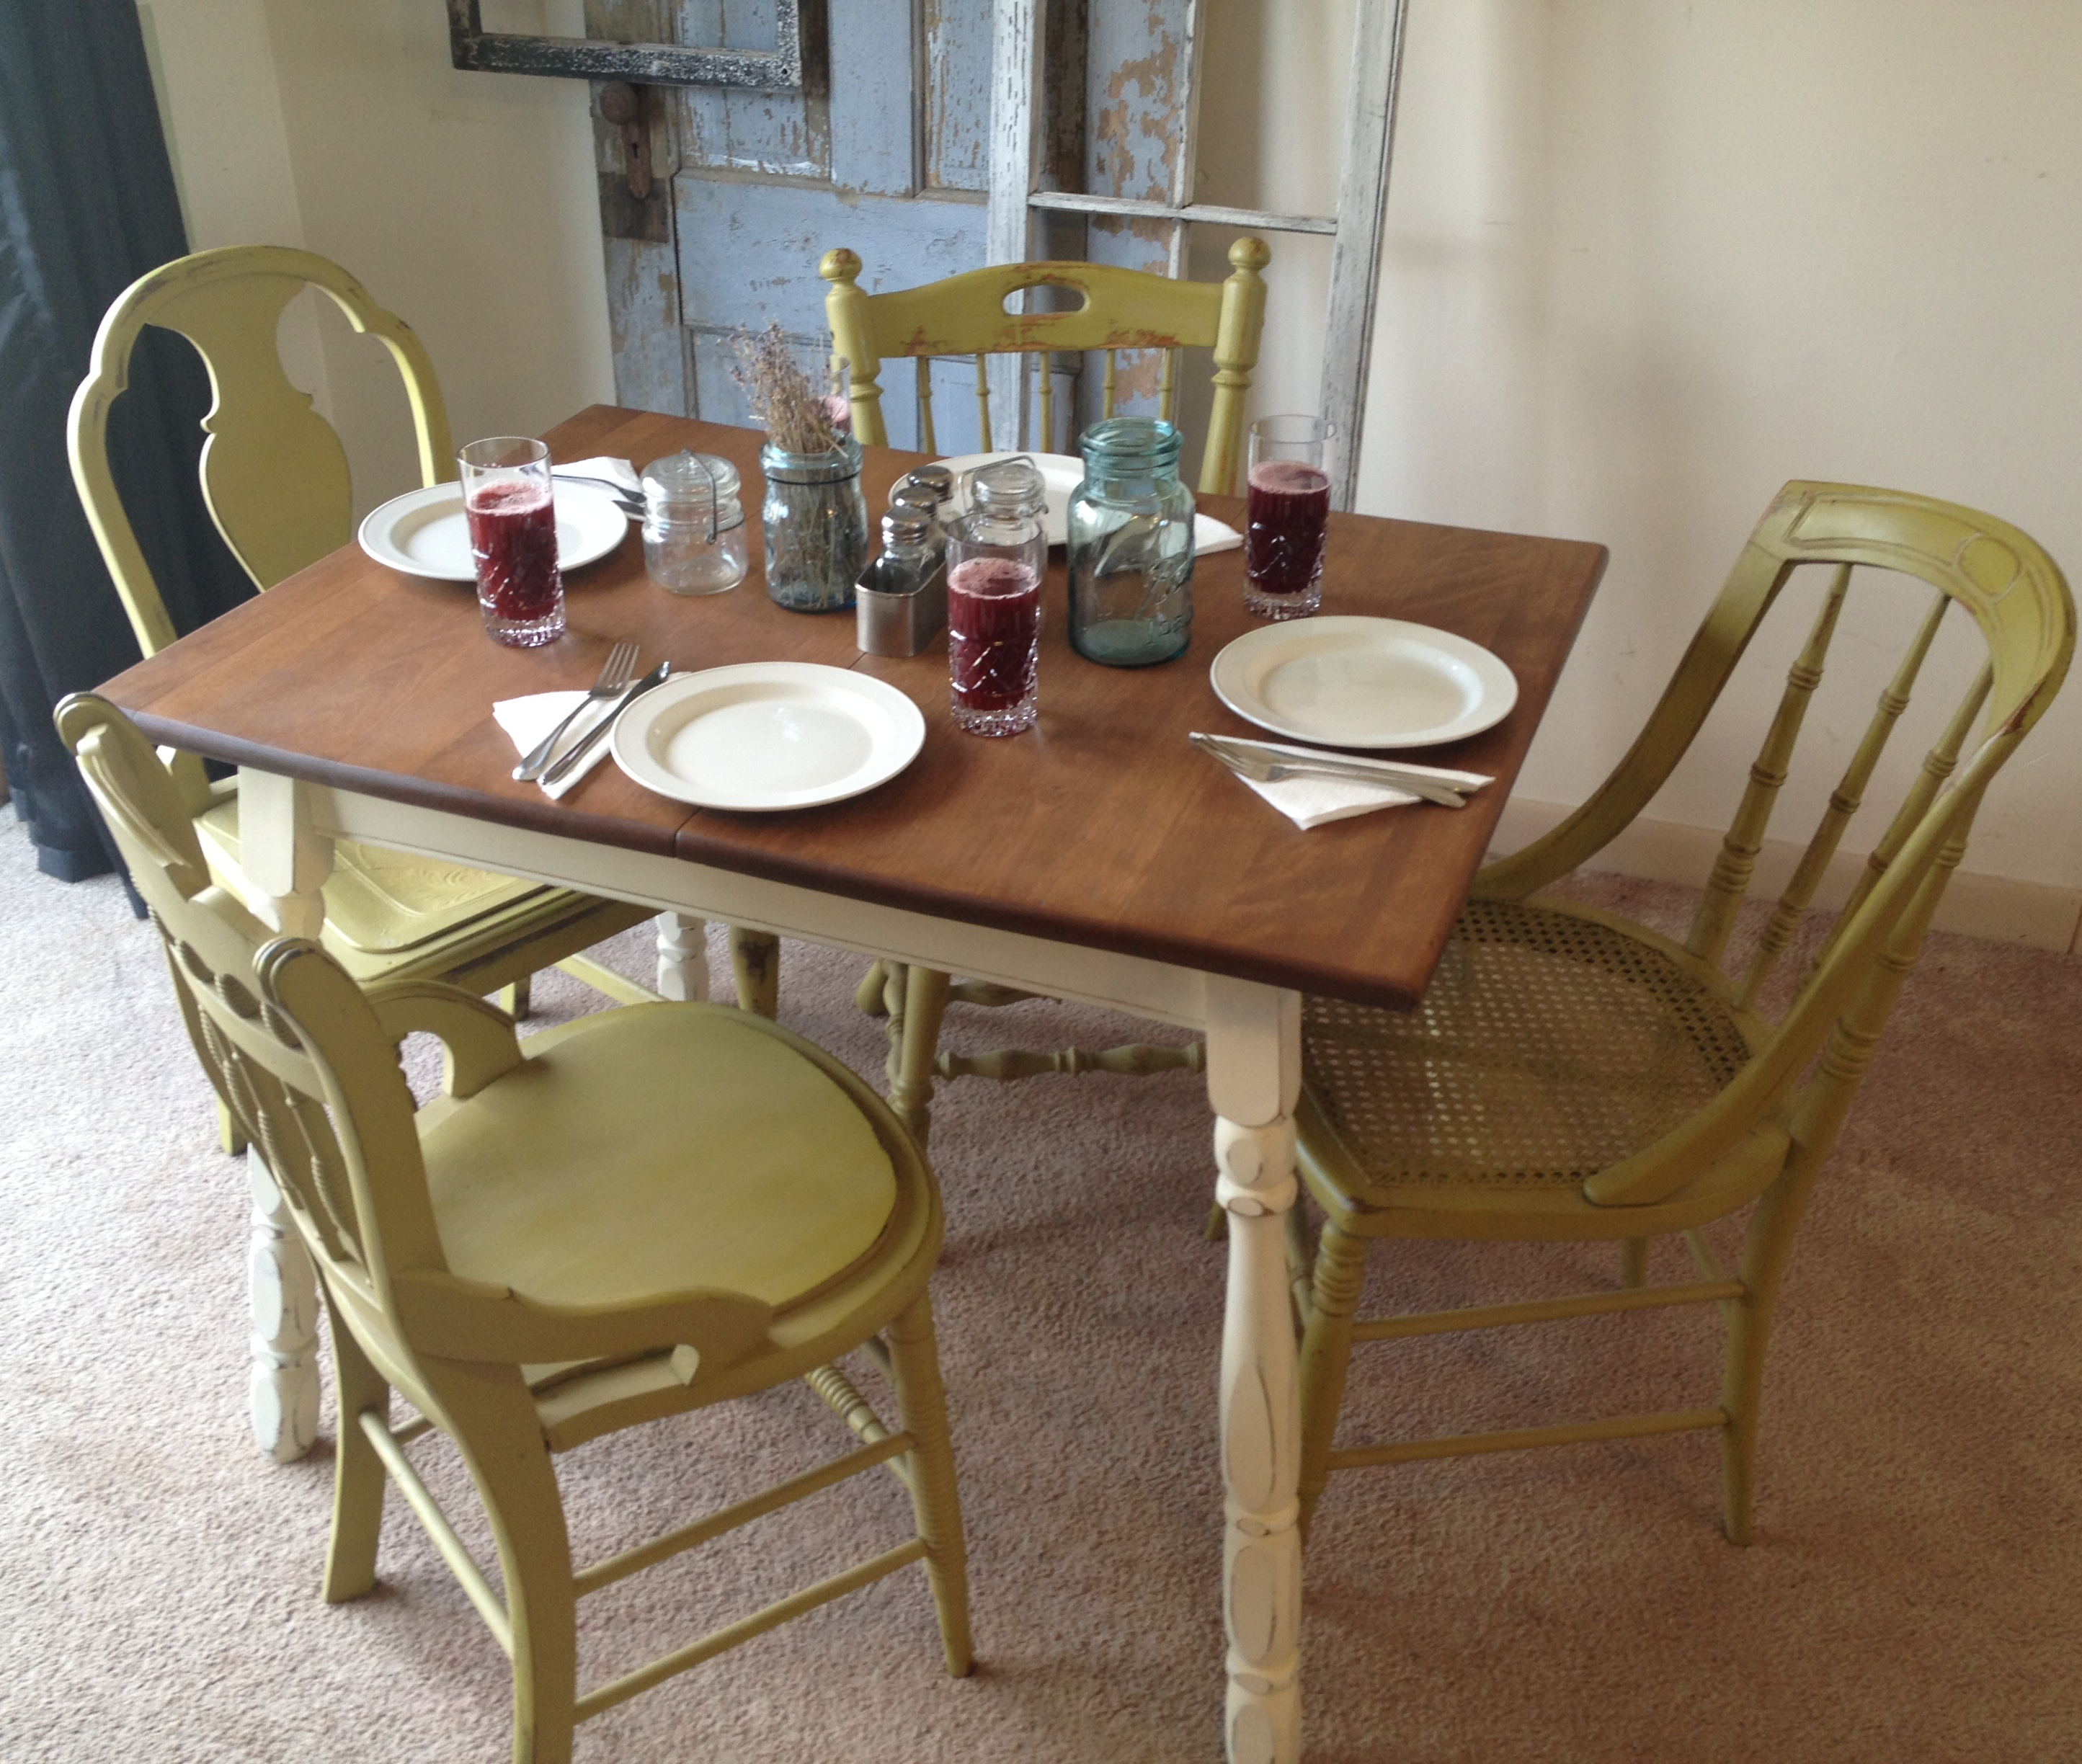 Table and chairs for kitchen photo - 1